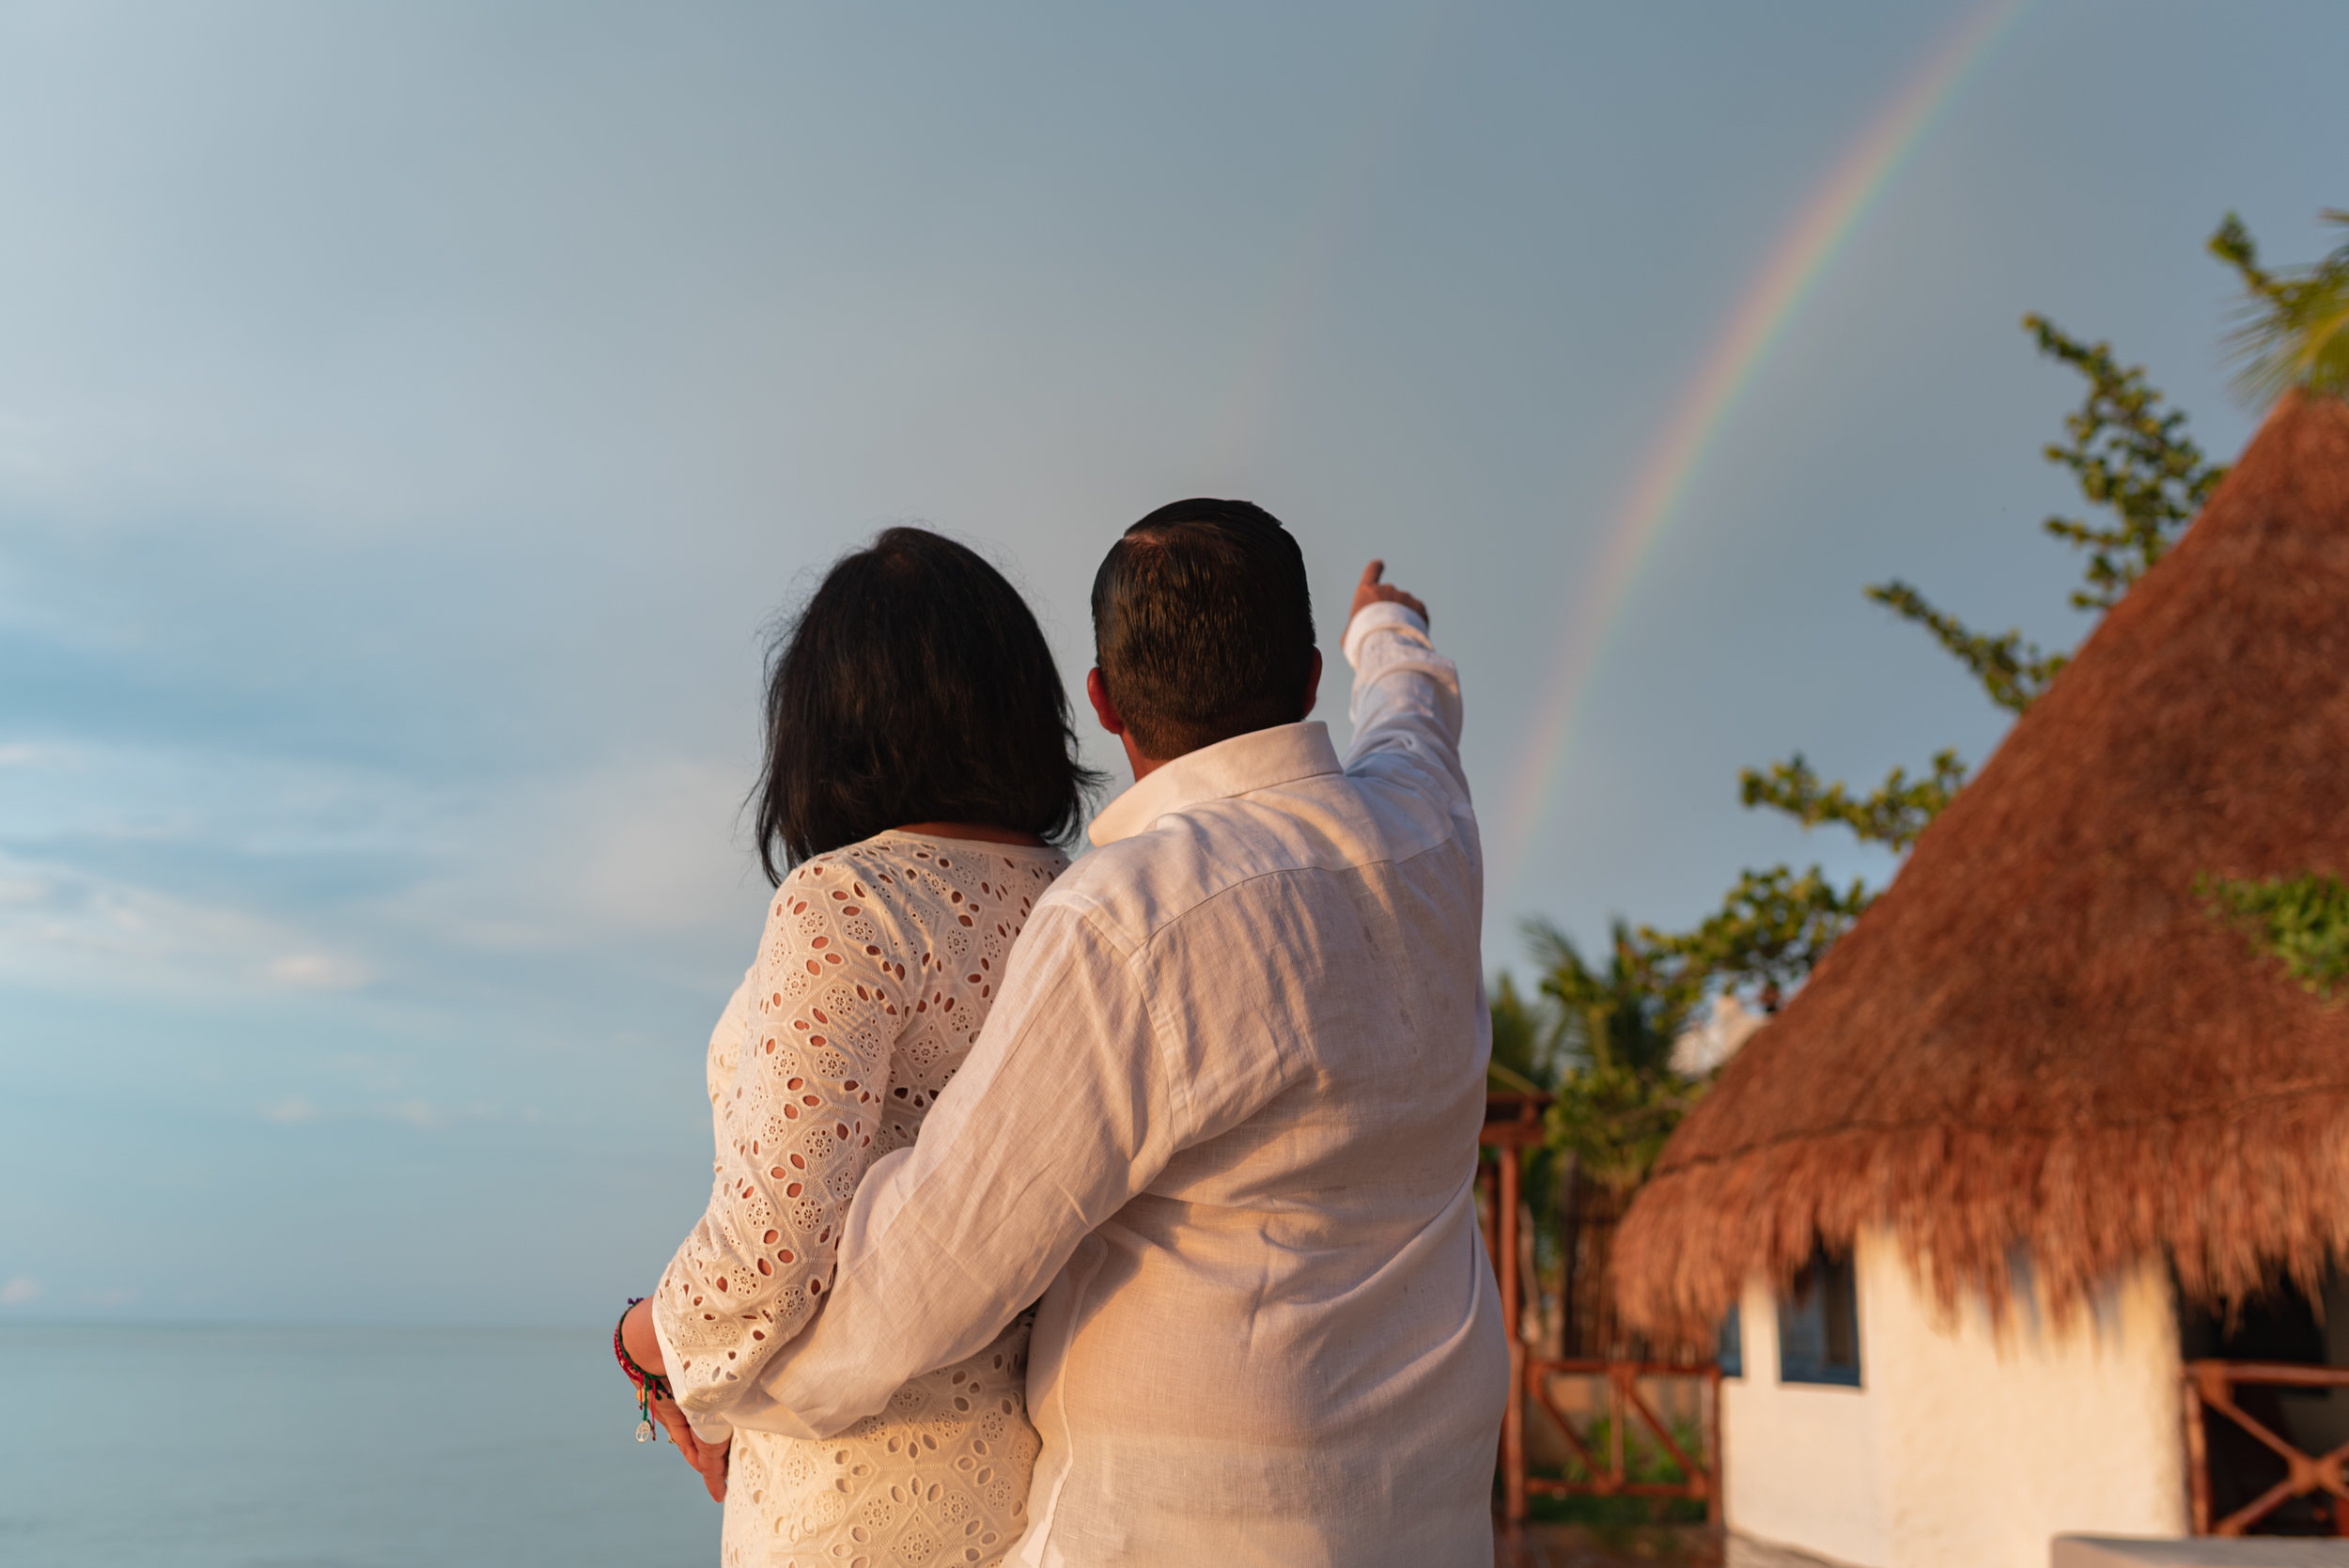 Holbox couples photoshoots f&f series 1 by @emmanuelphotoartist